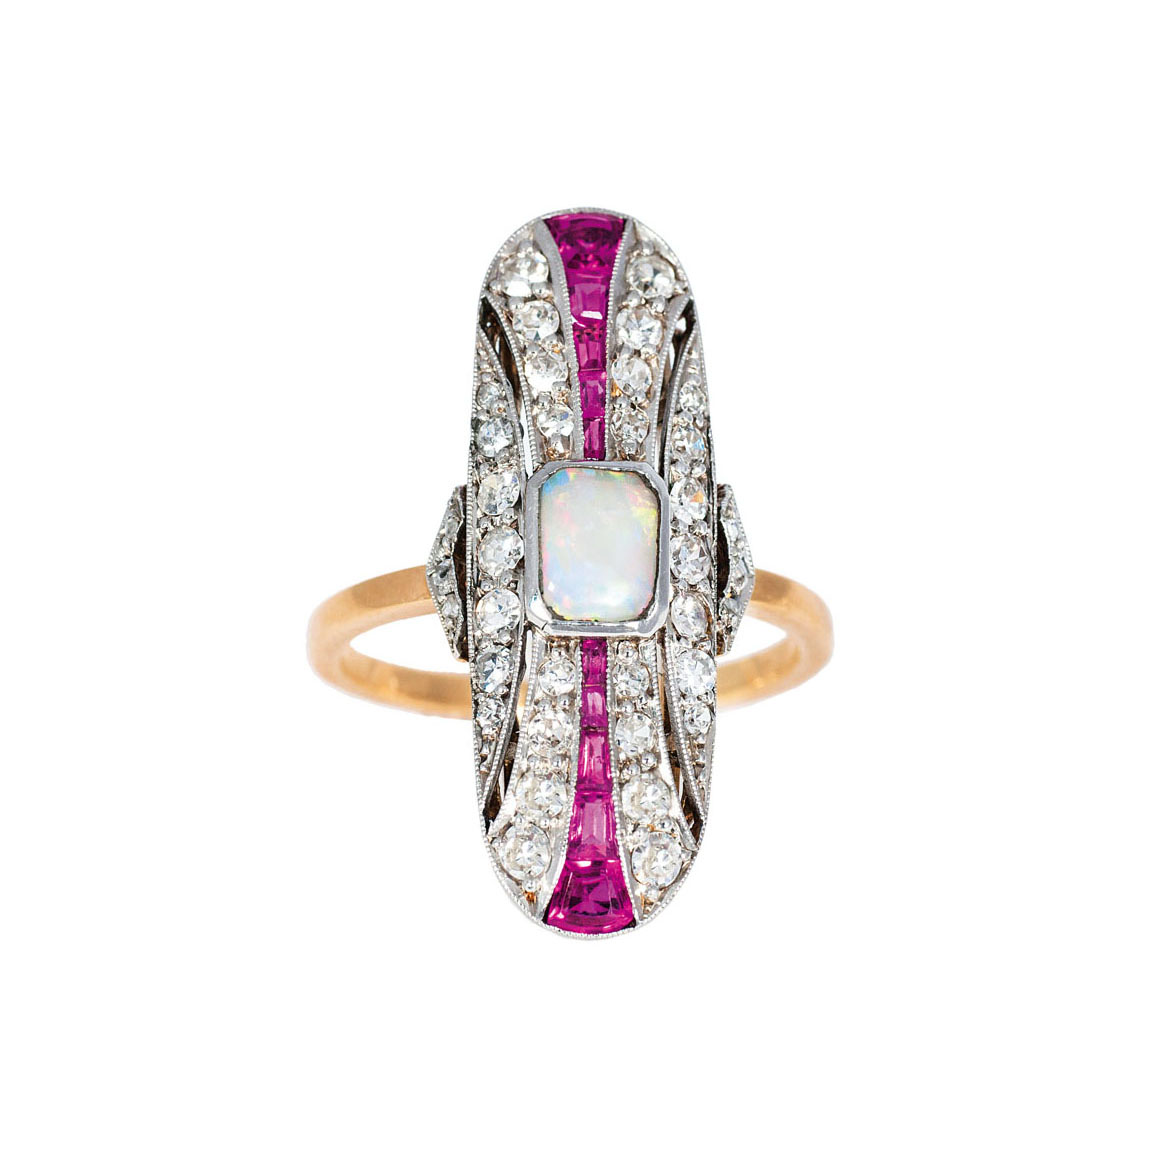 An Art Déco opal diamond ring with ruby setting